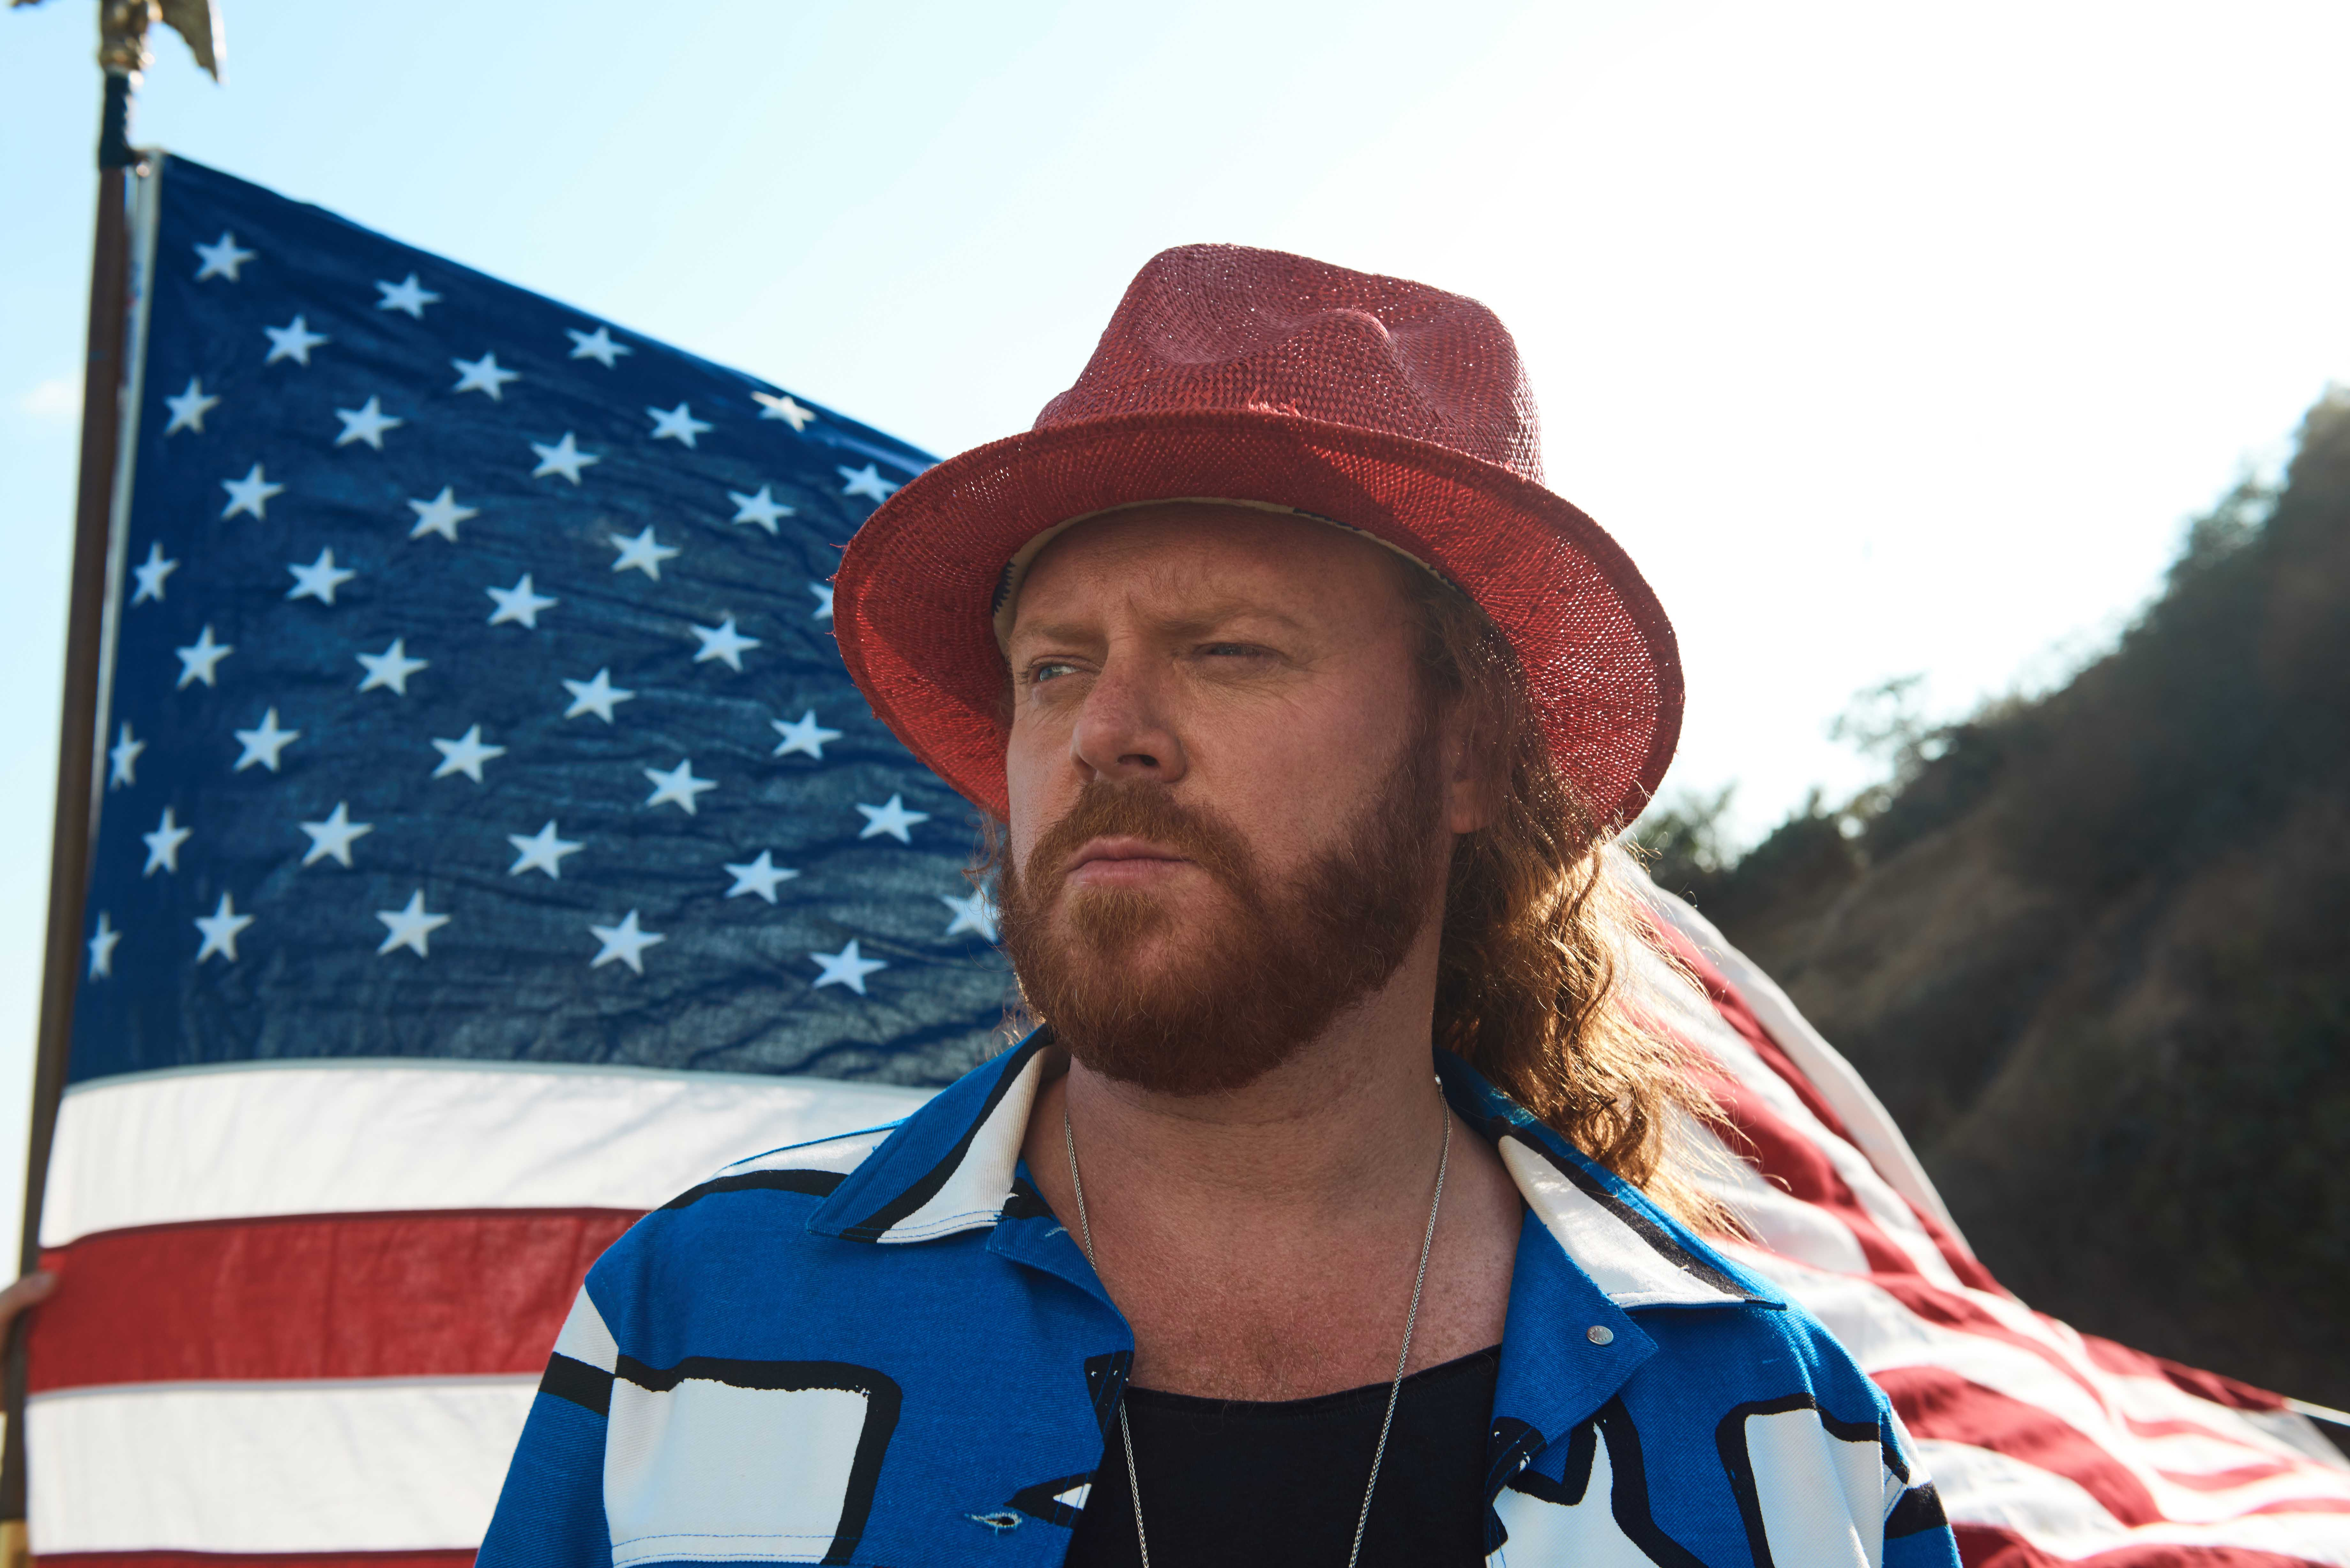 Keith Lemon fears his days of being a 'lovable k**bhead' are numbered